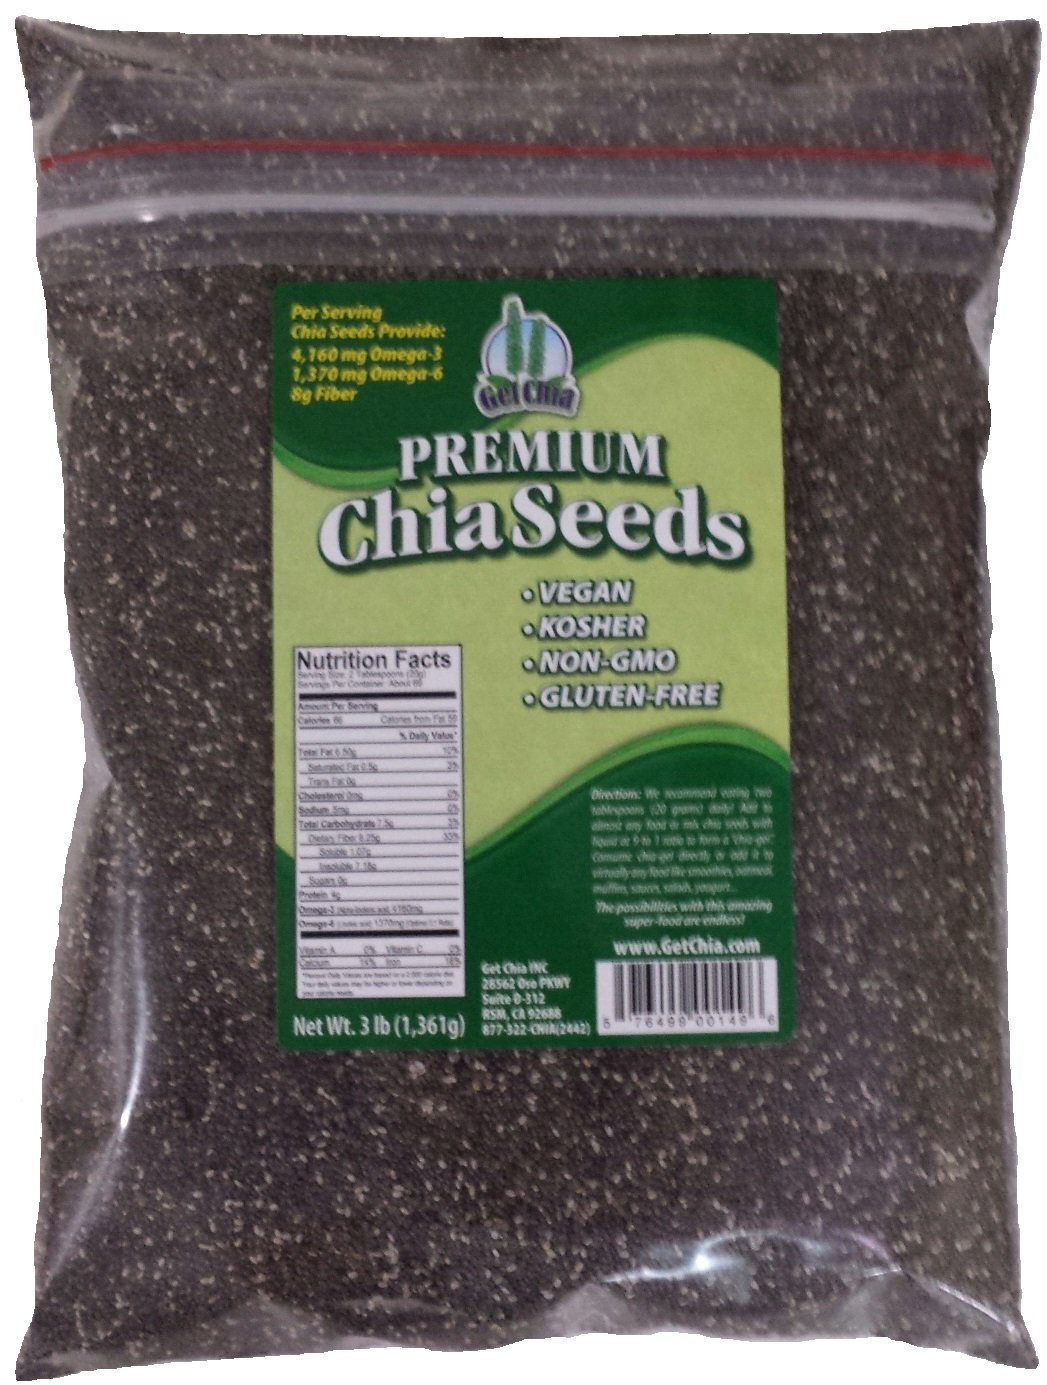 Marquis-Nutra Foods/Get Chia Brand Chia Seed, 3-Pound Bag